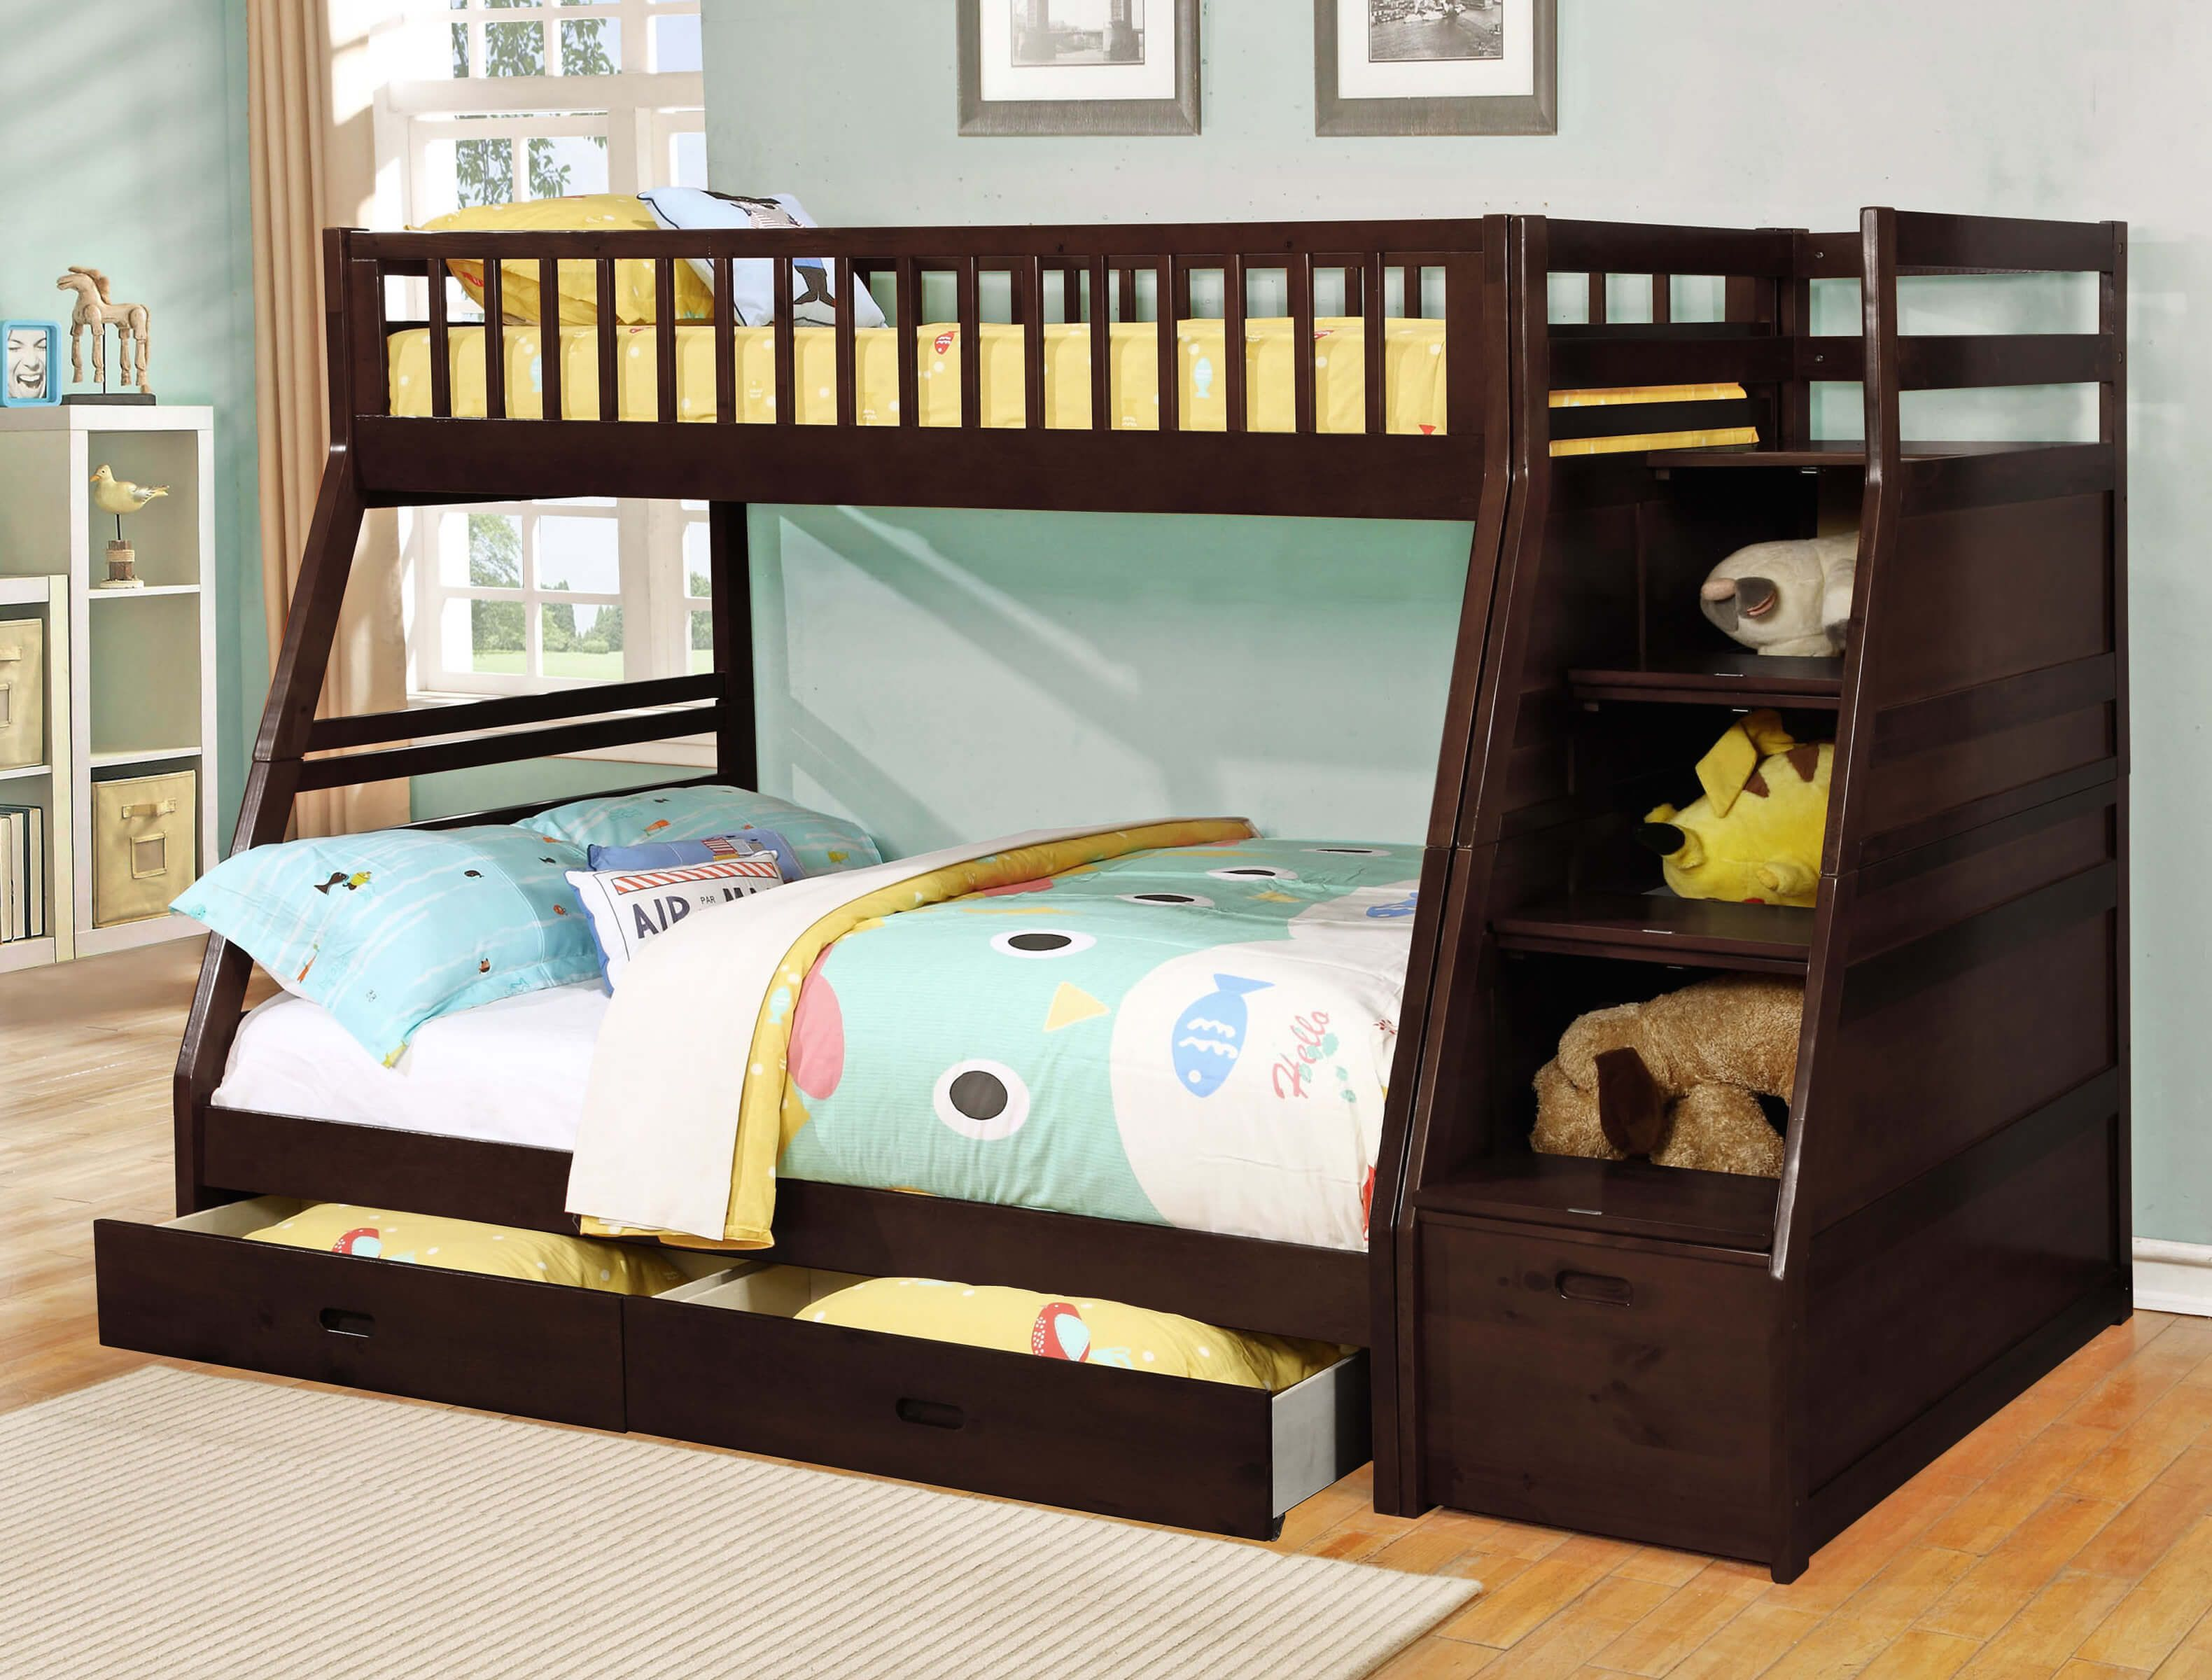 24 Designs Of Bunk Beds With Steps Kids Love These Etagenbett Schreibtisch Coole Etagenbetten Bett Mit Schubladen